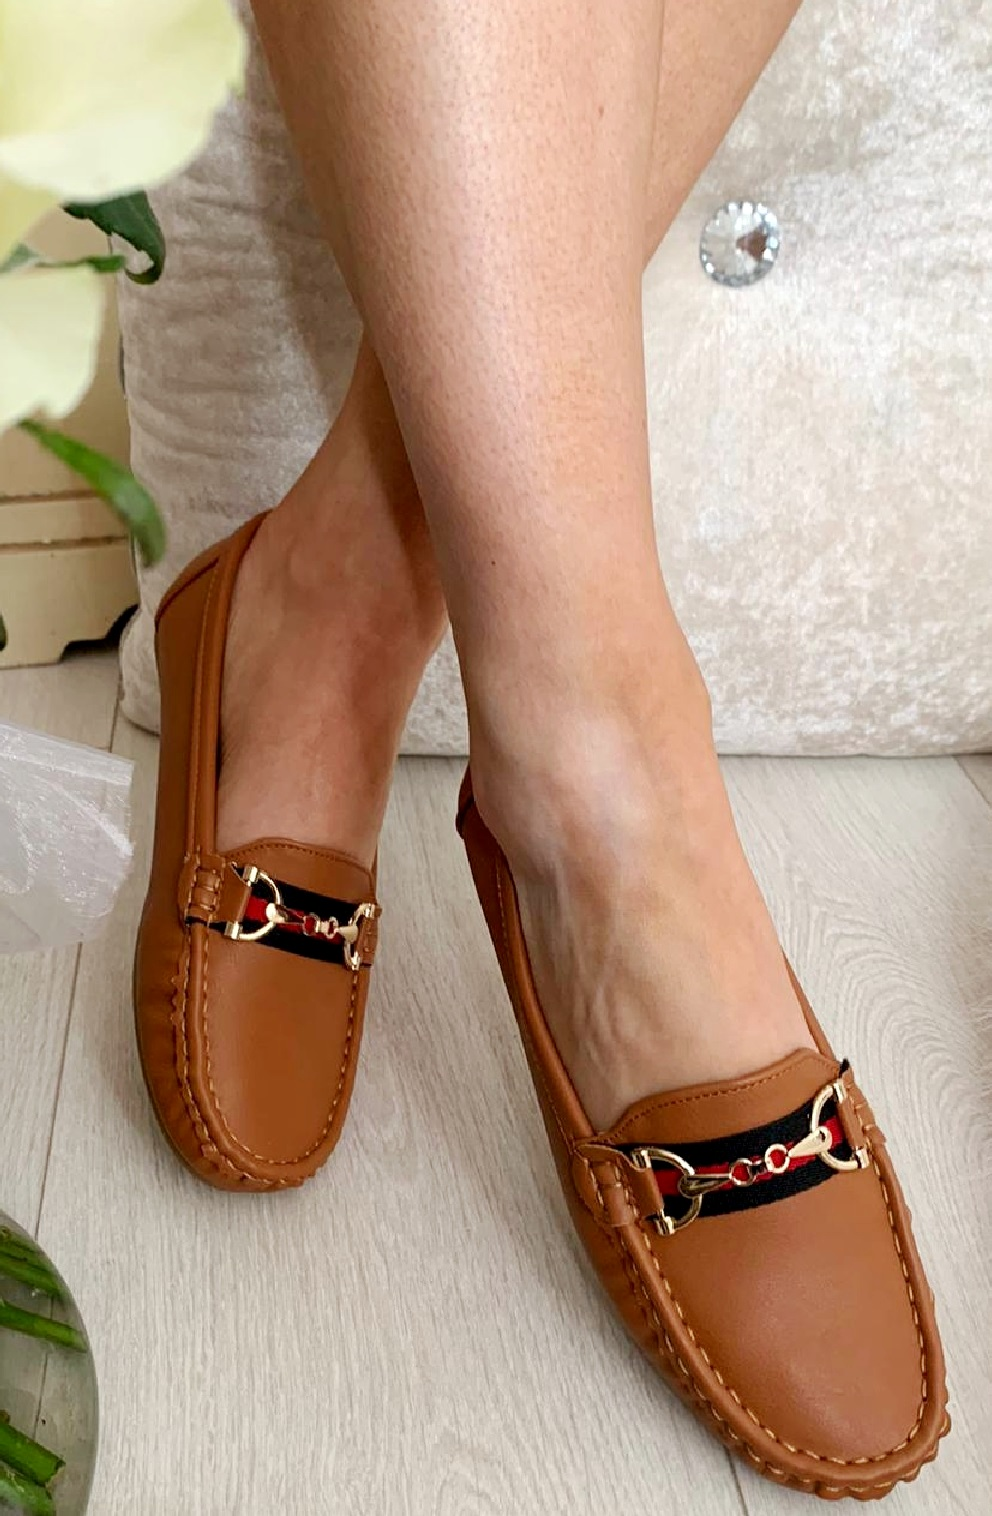 LADIES-WOMENS-FLATS-SLIP-ON-LOAFERS-WORK-OFFICE-BUCKLE-PUMPS-COMFY-SHOES-SZ-3-8 thumbnail 15